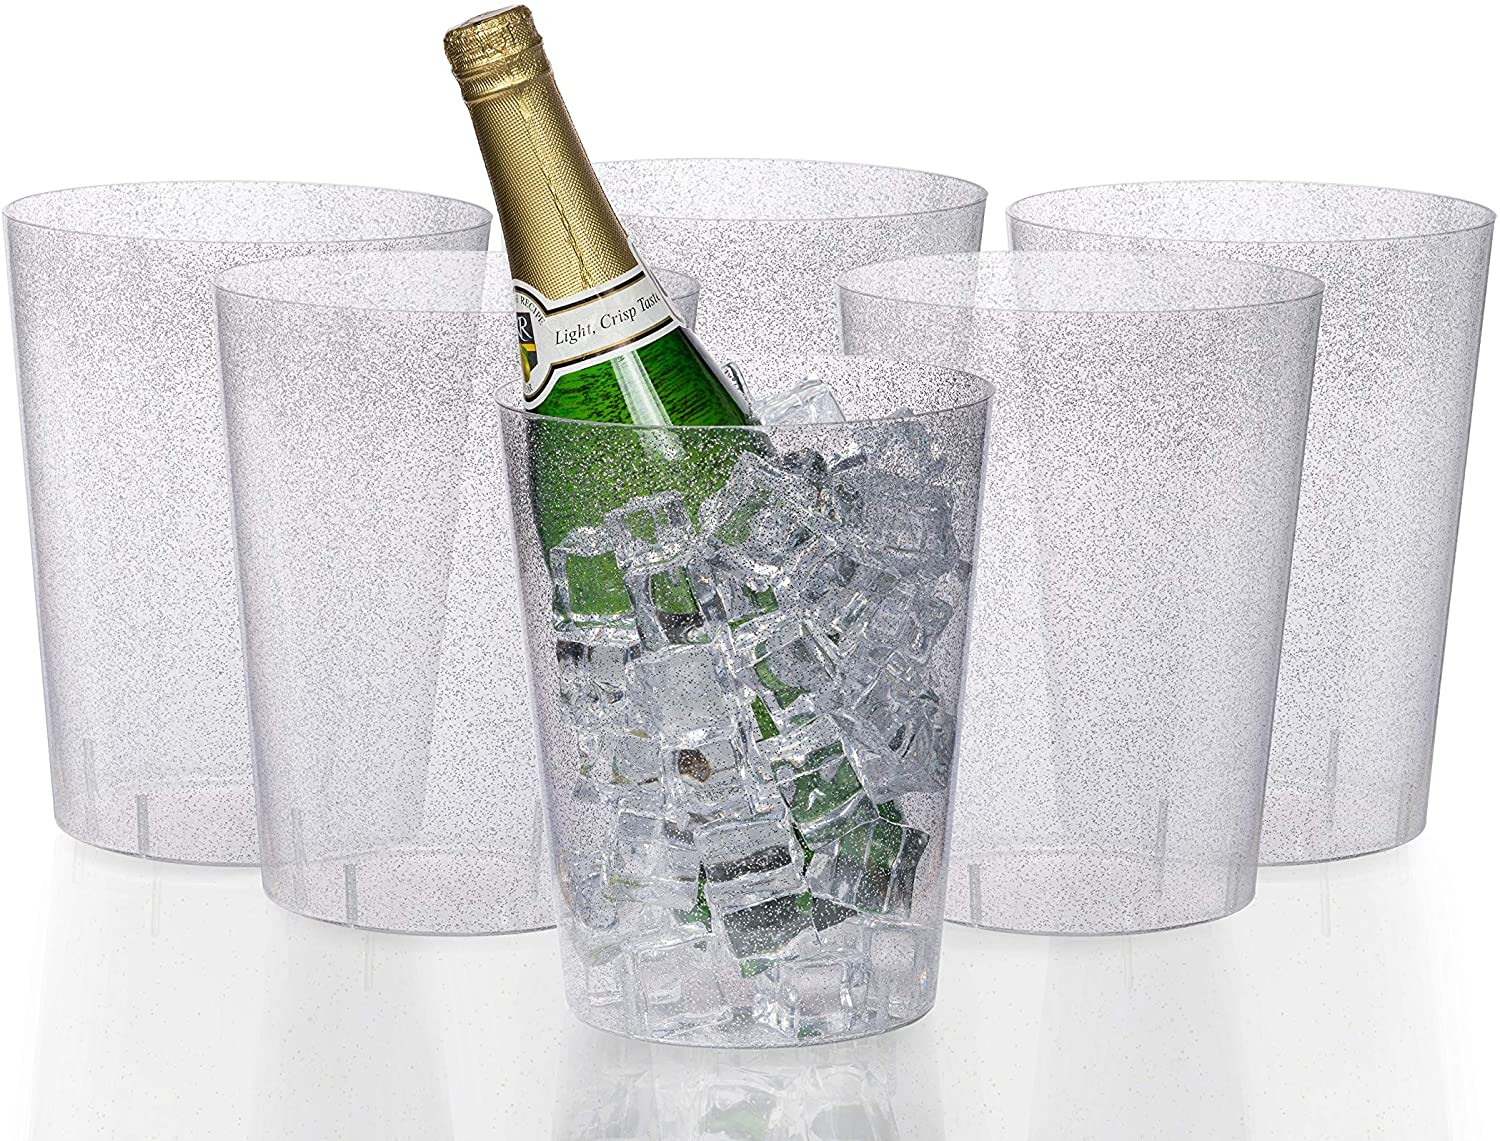 Exquisite 6 Pack Of 96 Ounce Disposable Silver Glitter Clear Plastic Ice Bucket For Parties - Good As One Large Champagne Chiller Or Classic Wine Bottle Chiller